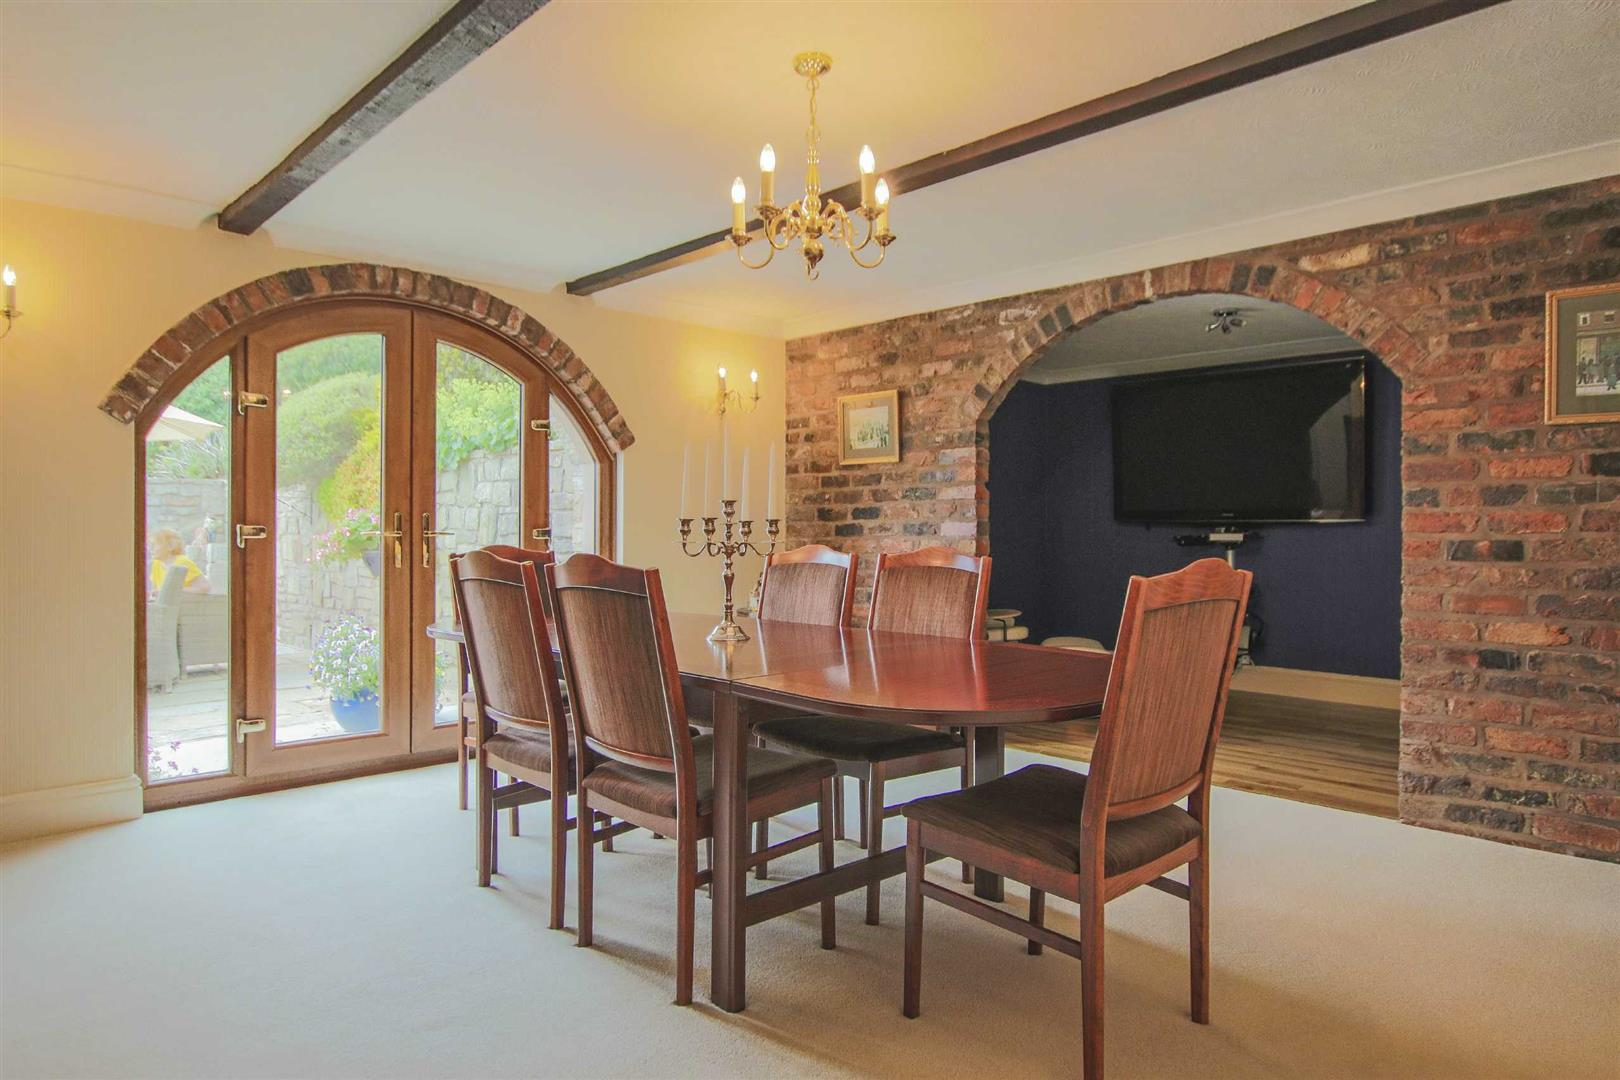 4 Bedroom Barn Conversion For Sale - p033135_46.jpg